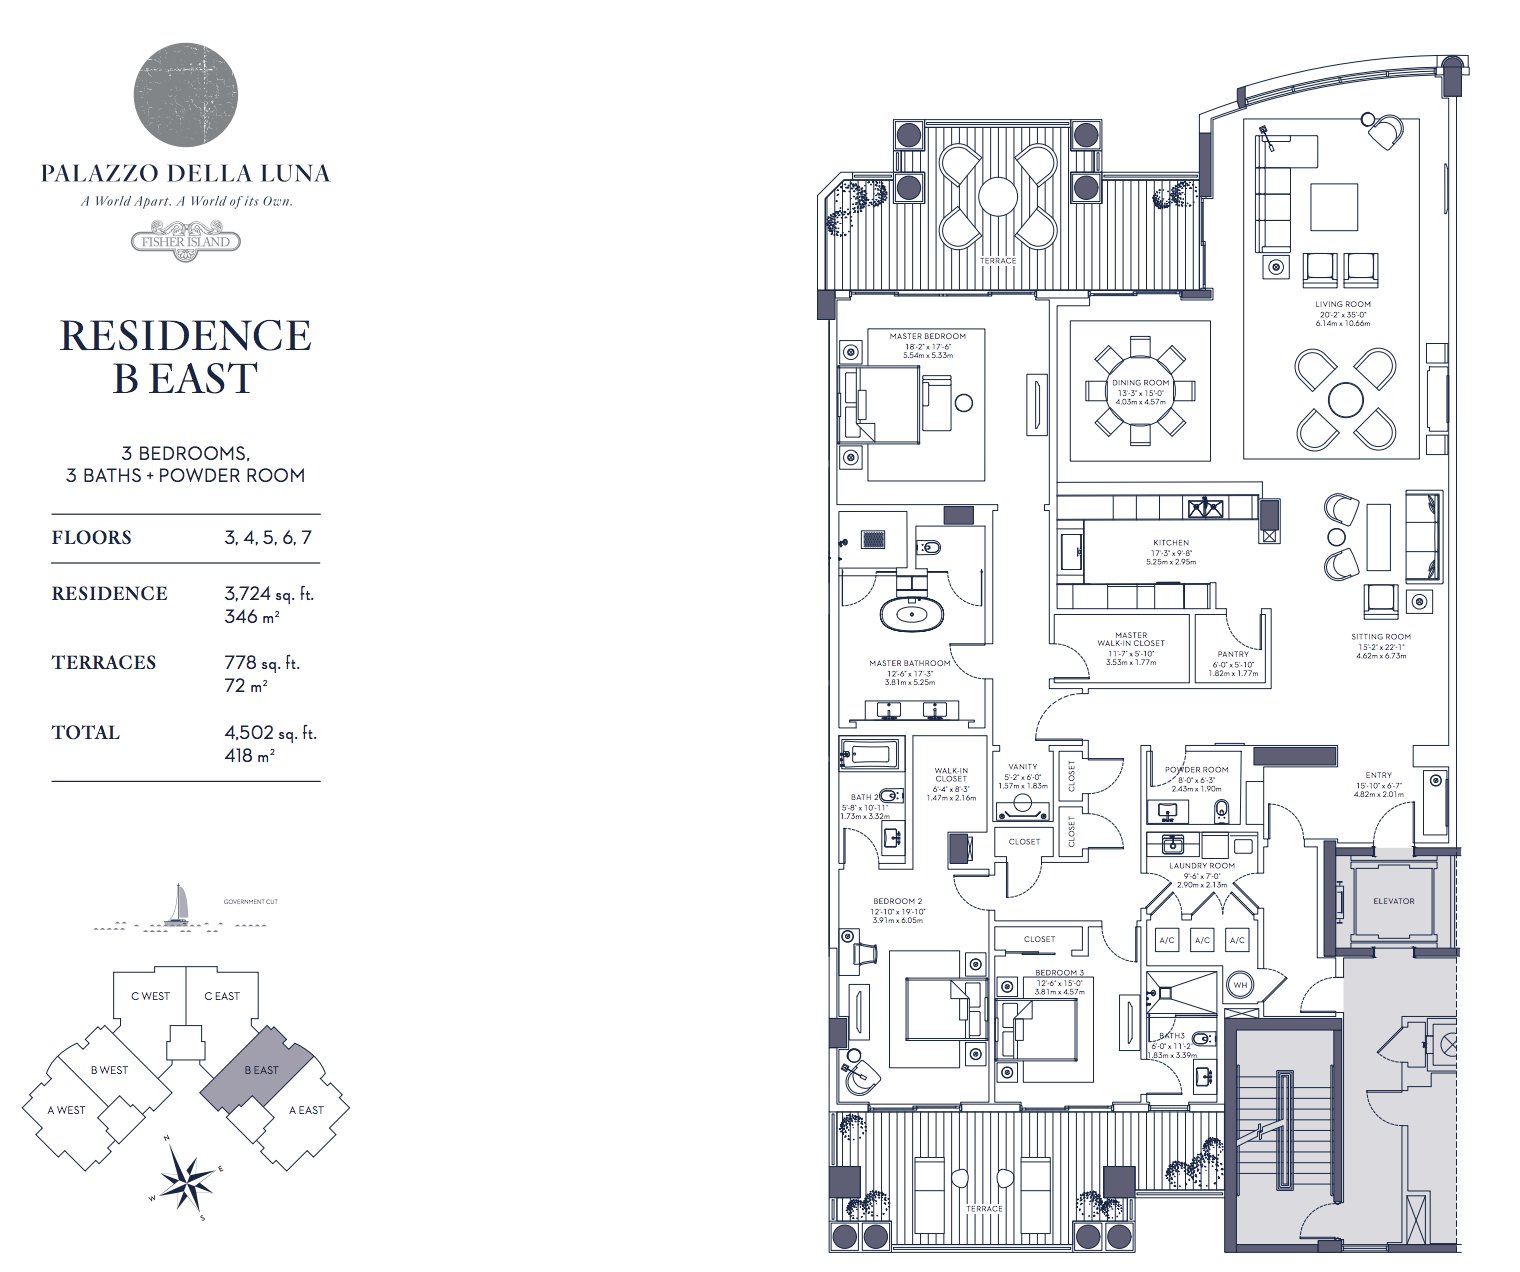 Palazzo della Luna| Residence B East Floors 3,4,5,6 and 7